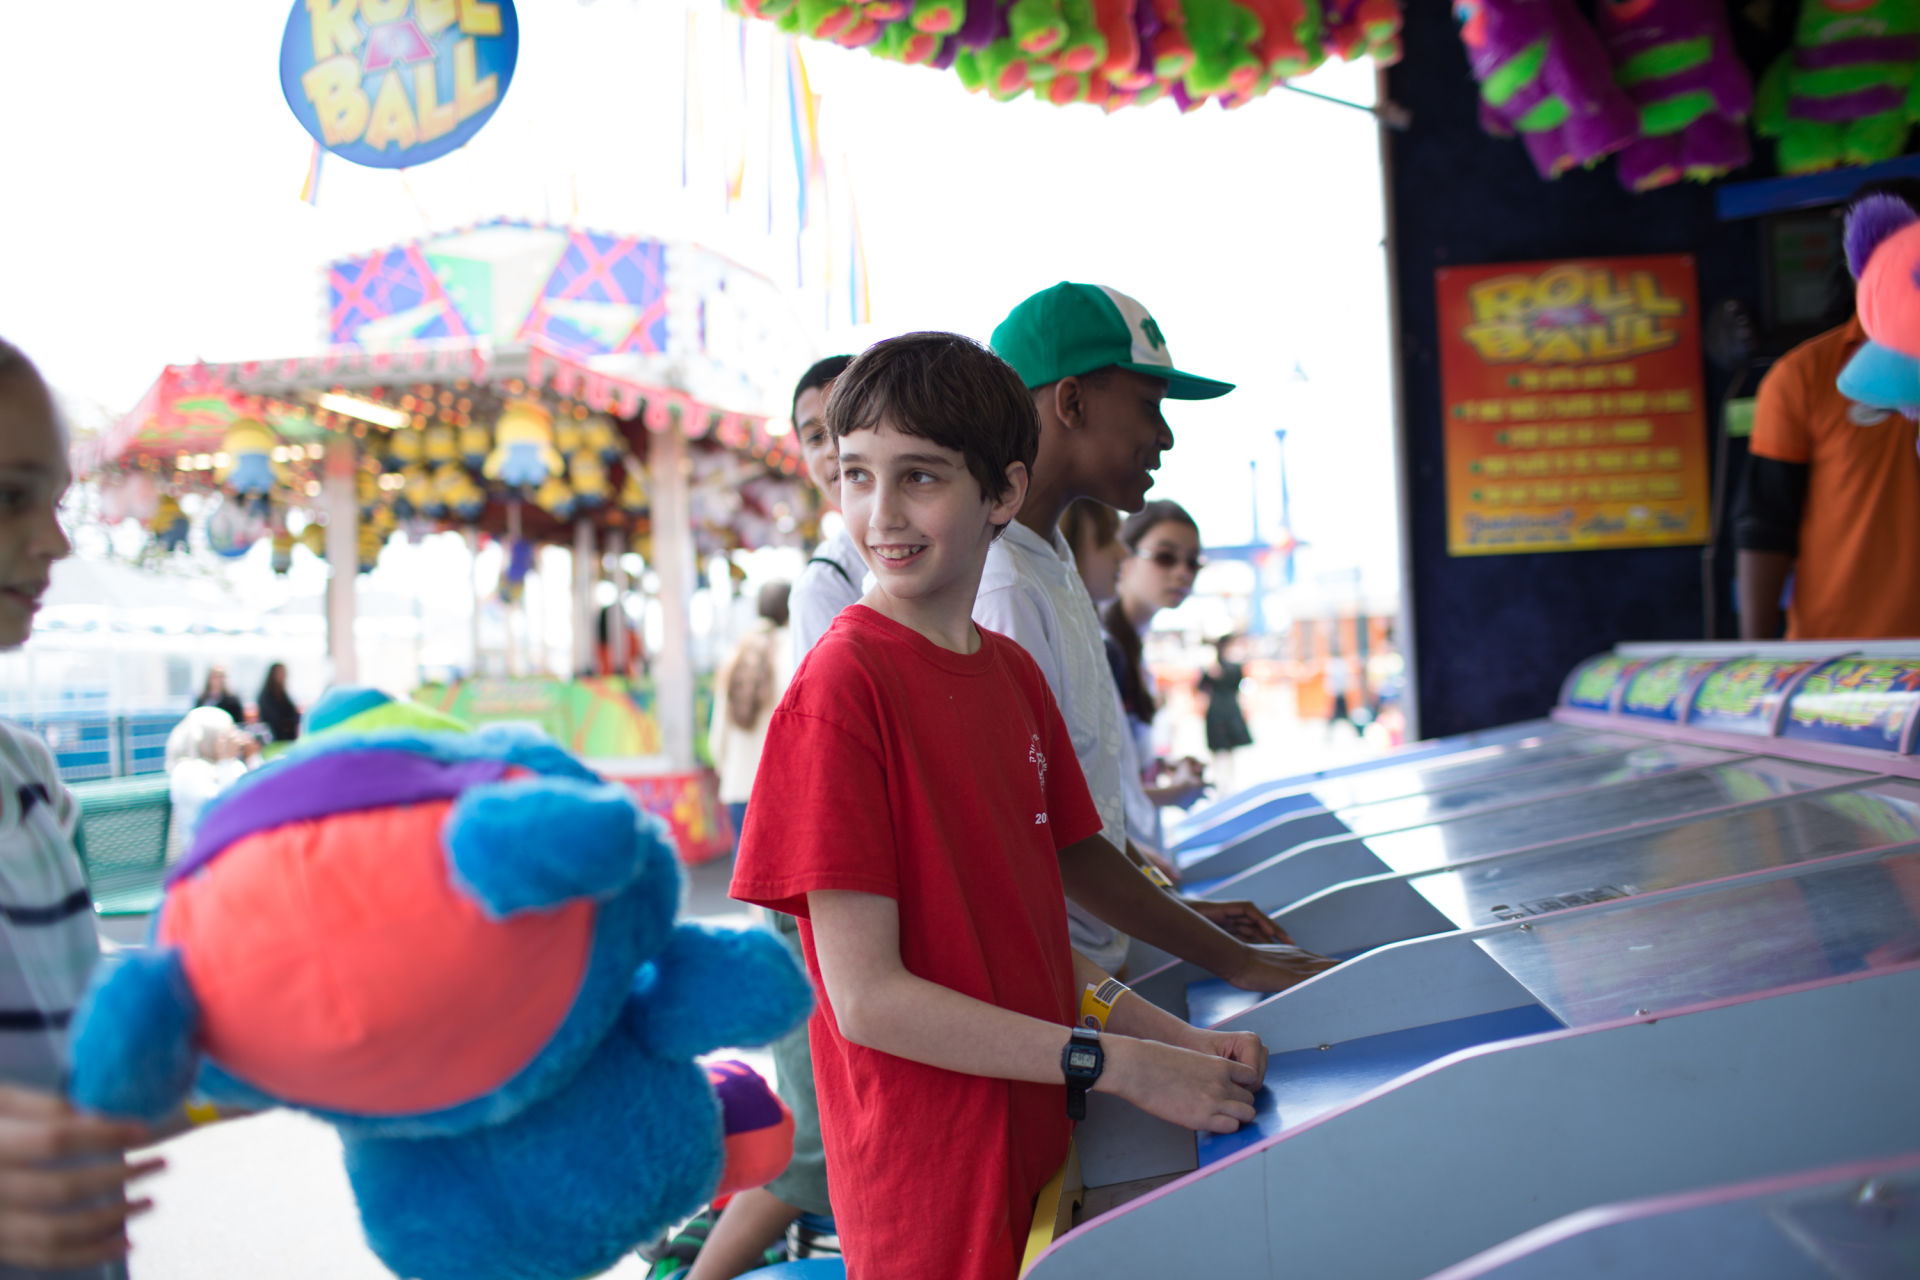 Student Etai Kurtzman, 12, wins a bear at the Roll-A-Ball game at Coney Island in Brooklyn, NY May 28, 2015. The group of students from Quest to Learn School took the day trip to Coney Island to analyze user experience on games and rides at Luna Park as part of  their late-spring school curriculum.